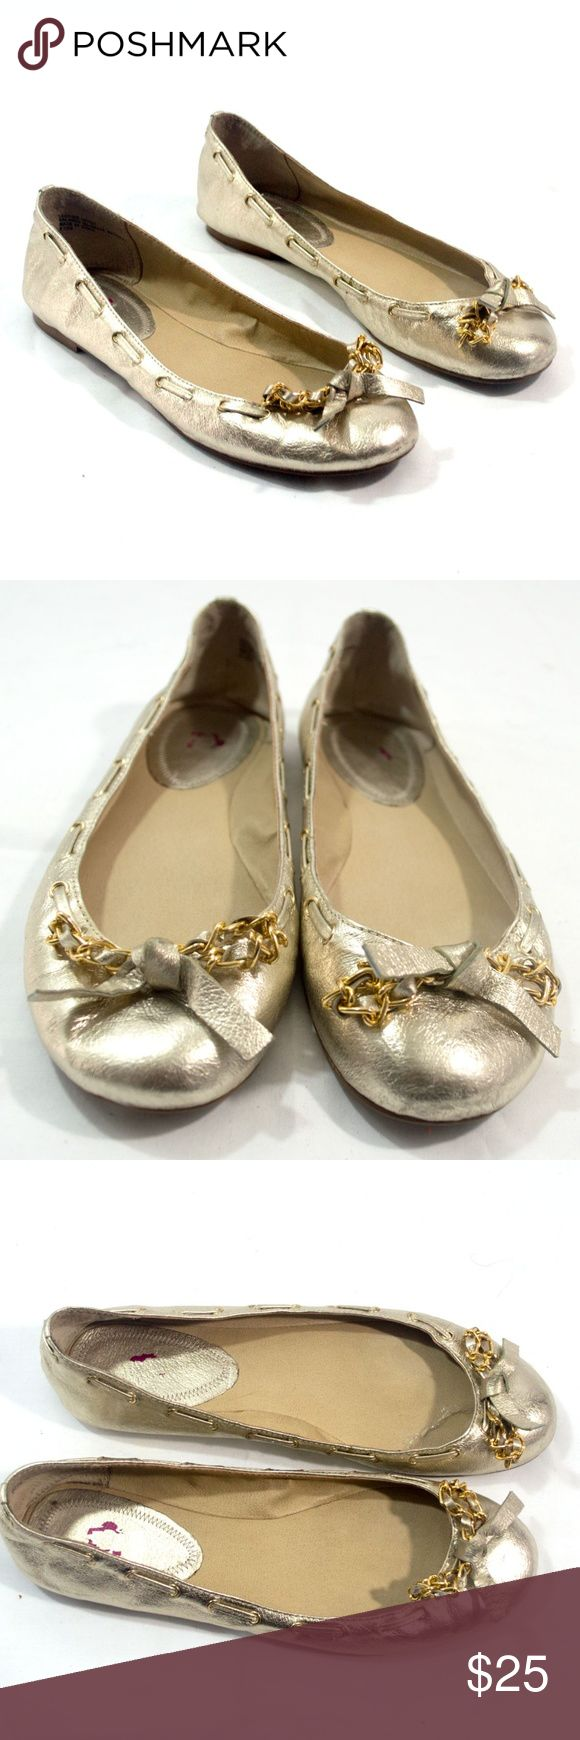 Juicy Couture Light Gold Ballet Flats 8.5 These Pretty Ballet Flats is a light gold color, hard to photograph correct color.  These shoes has decorated gold color chain with bow and light gold color tie going around the top of shoe.  These shoes are gently worn, and good shape, heels and soles are good. Name brand is faded on inside of shoe.  Size:  8.5 Leather Upper Juicy Couture Shoes Flats & Loafers